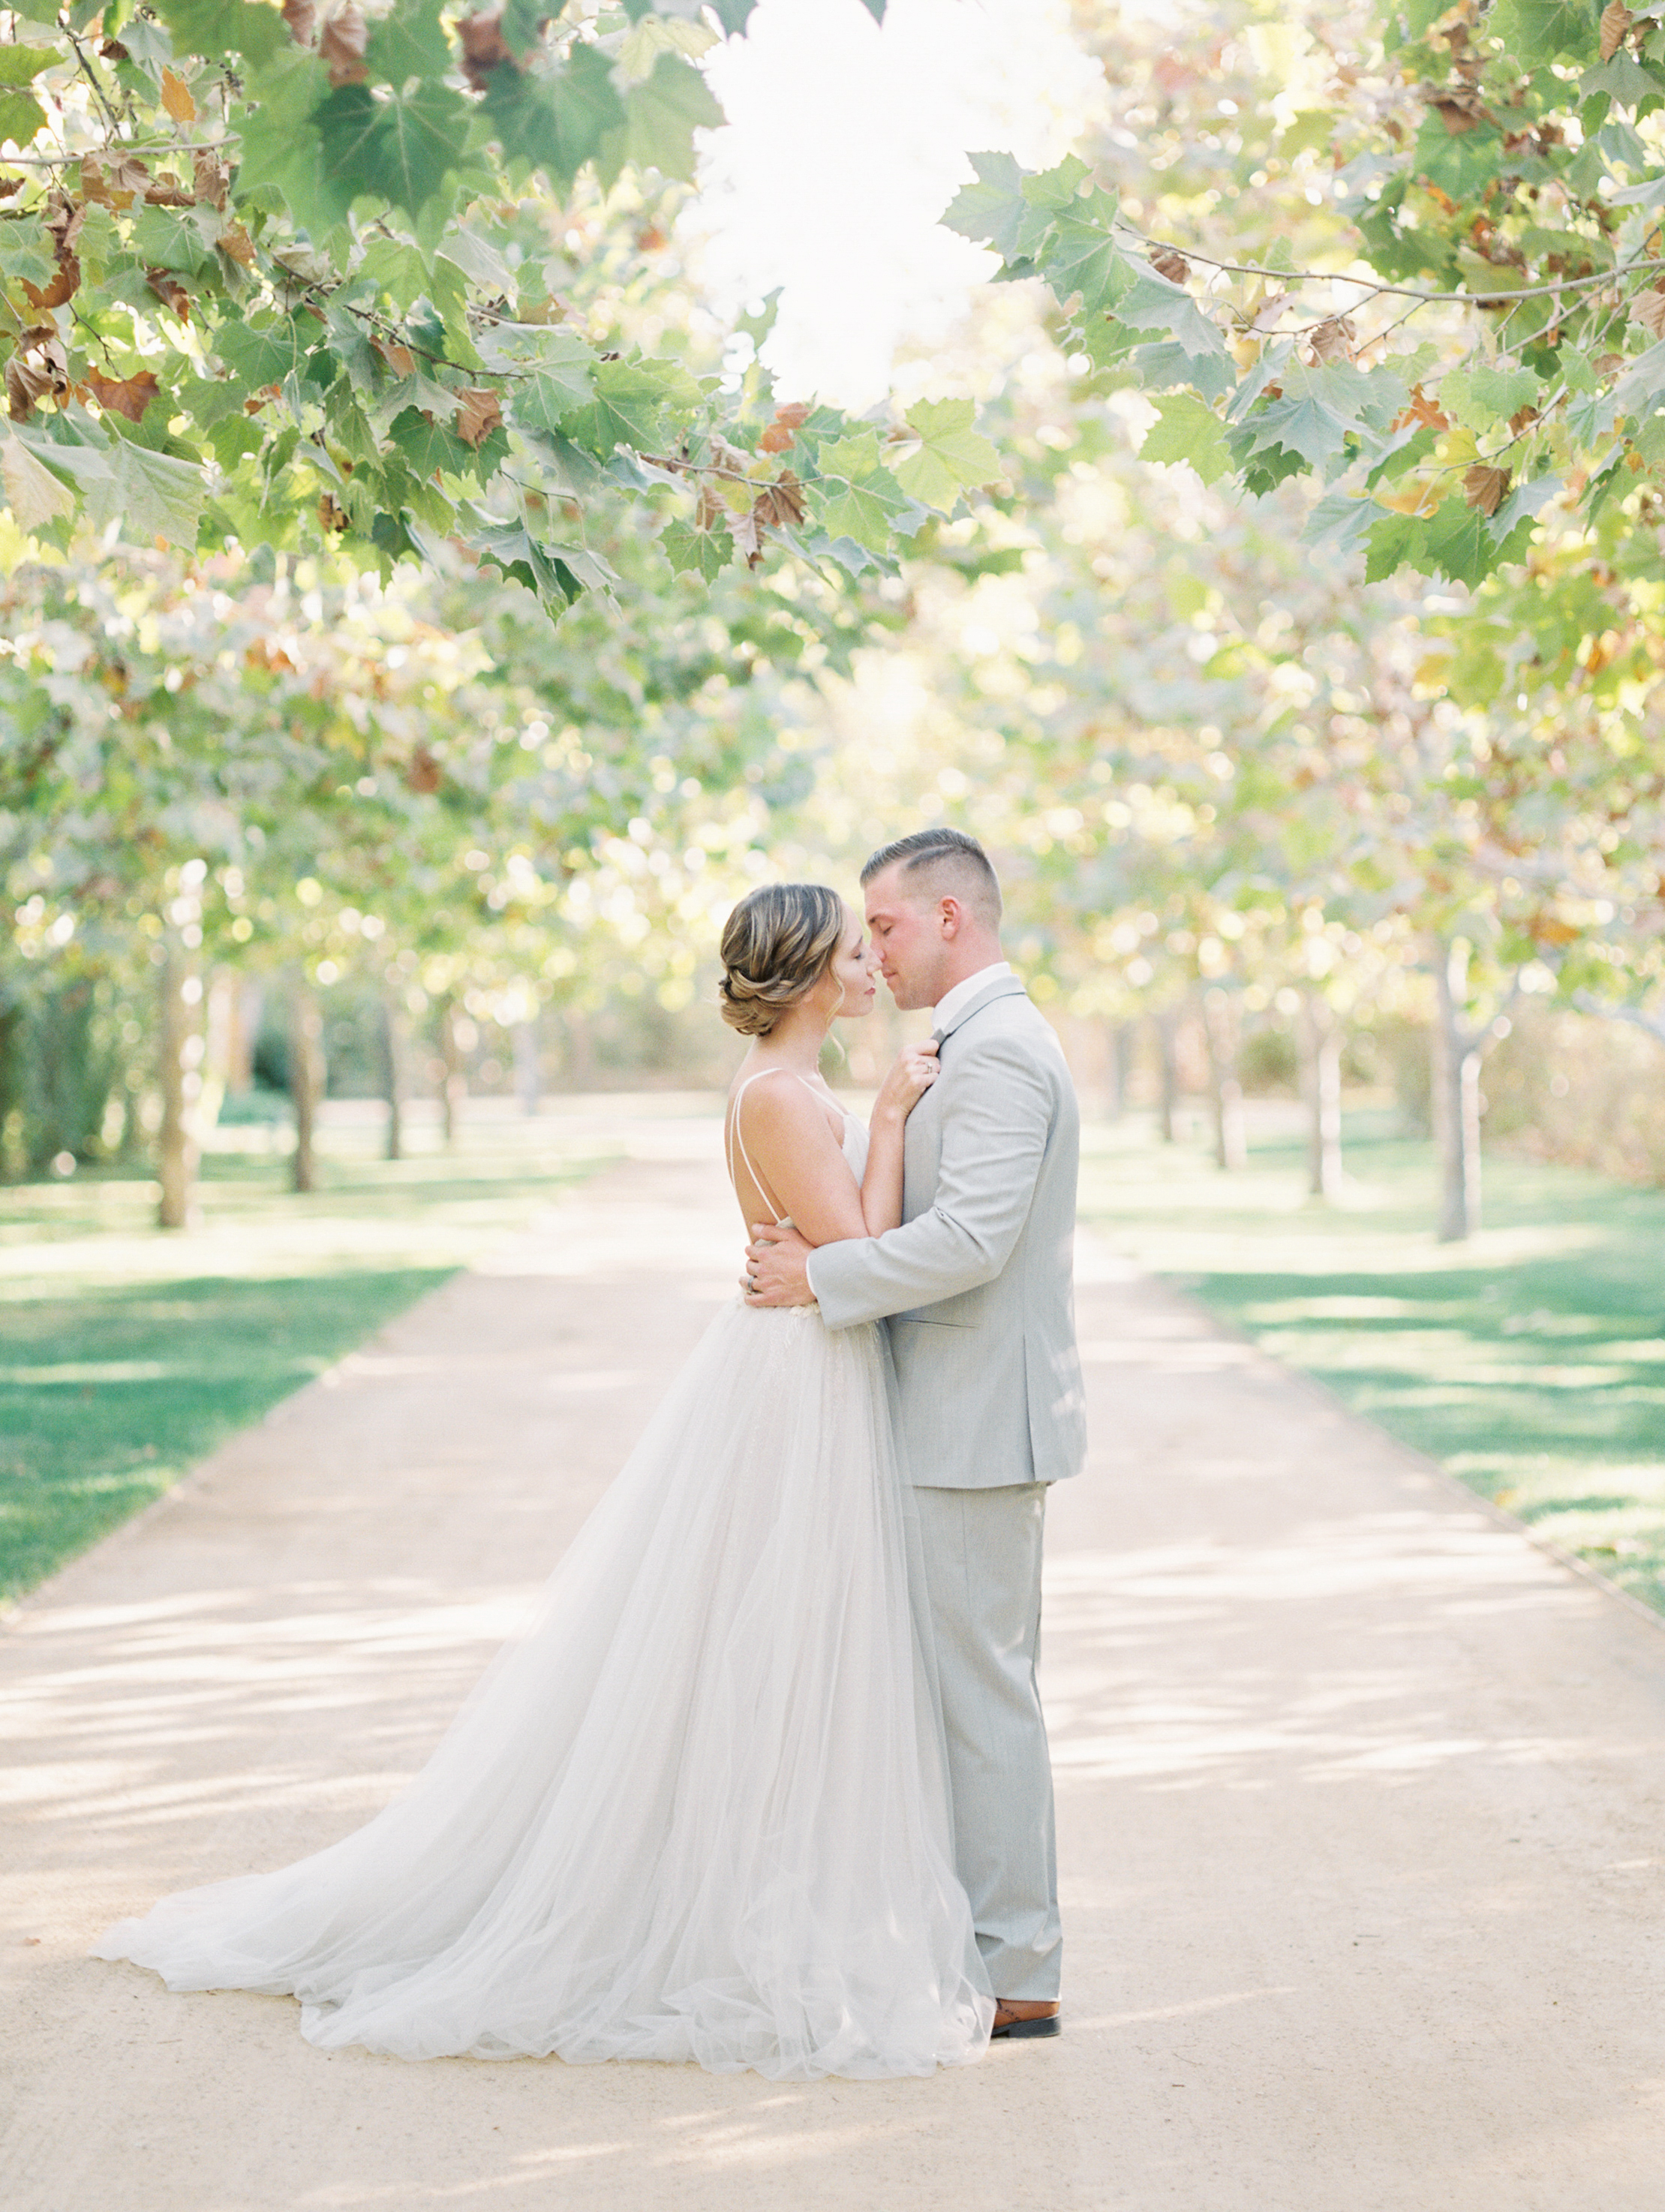 Kestrel Park Wedding Santa Ynez Wedding Photographer